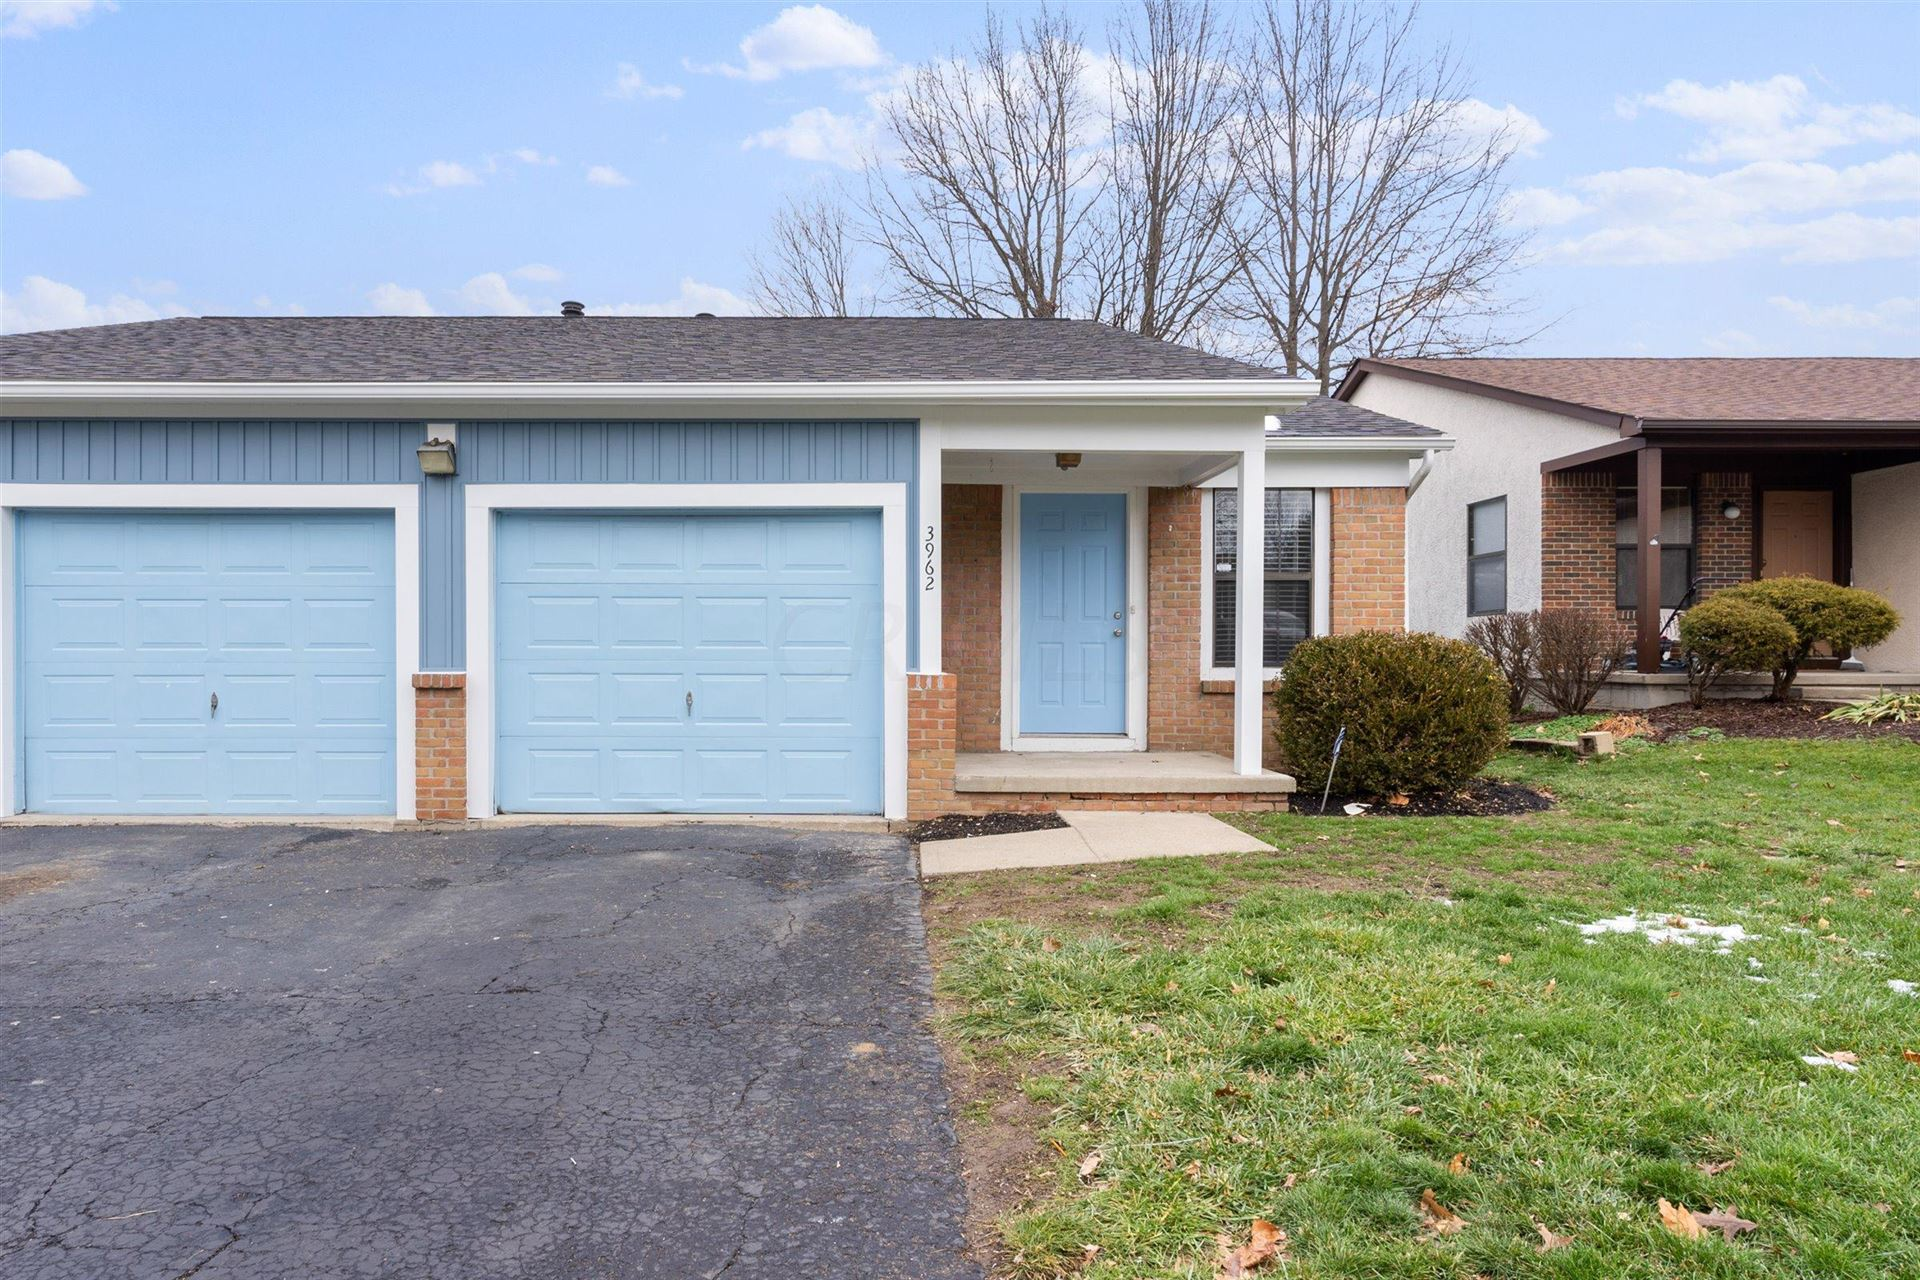 Photo of 3960-3962 Forest Edge Drive, Columbus, OH 43230 (MLS # 220044146)